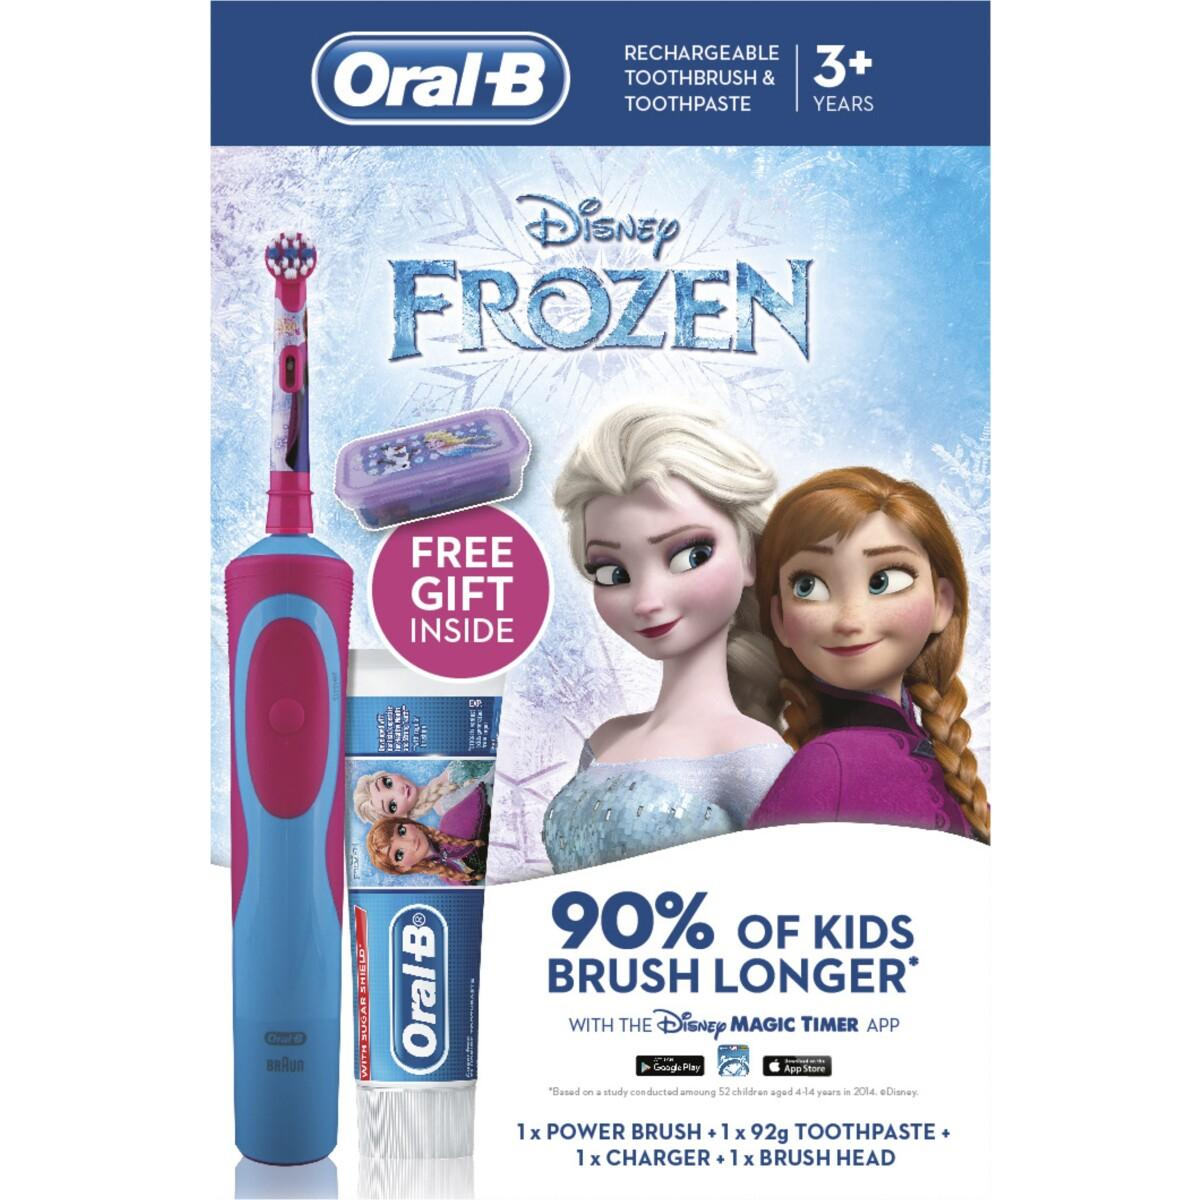 Oral-B Disney Frozen Rechargeable Toothbrush and Toothpaste Pack